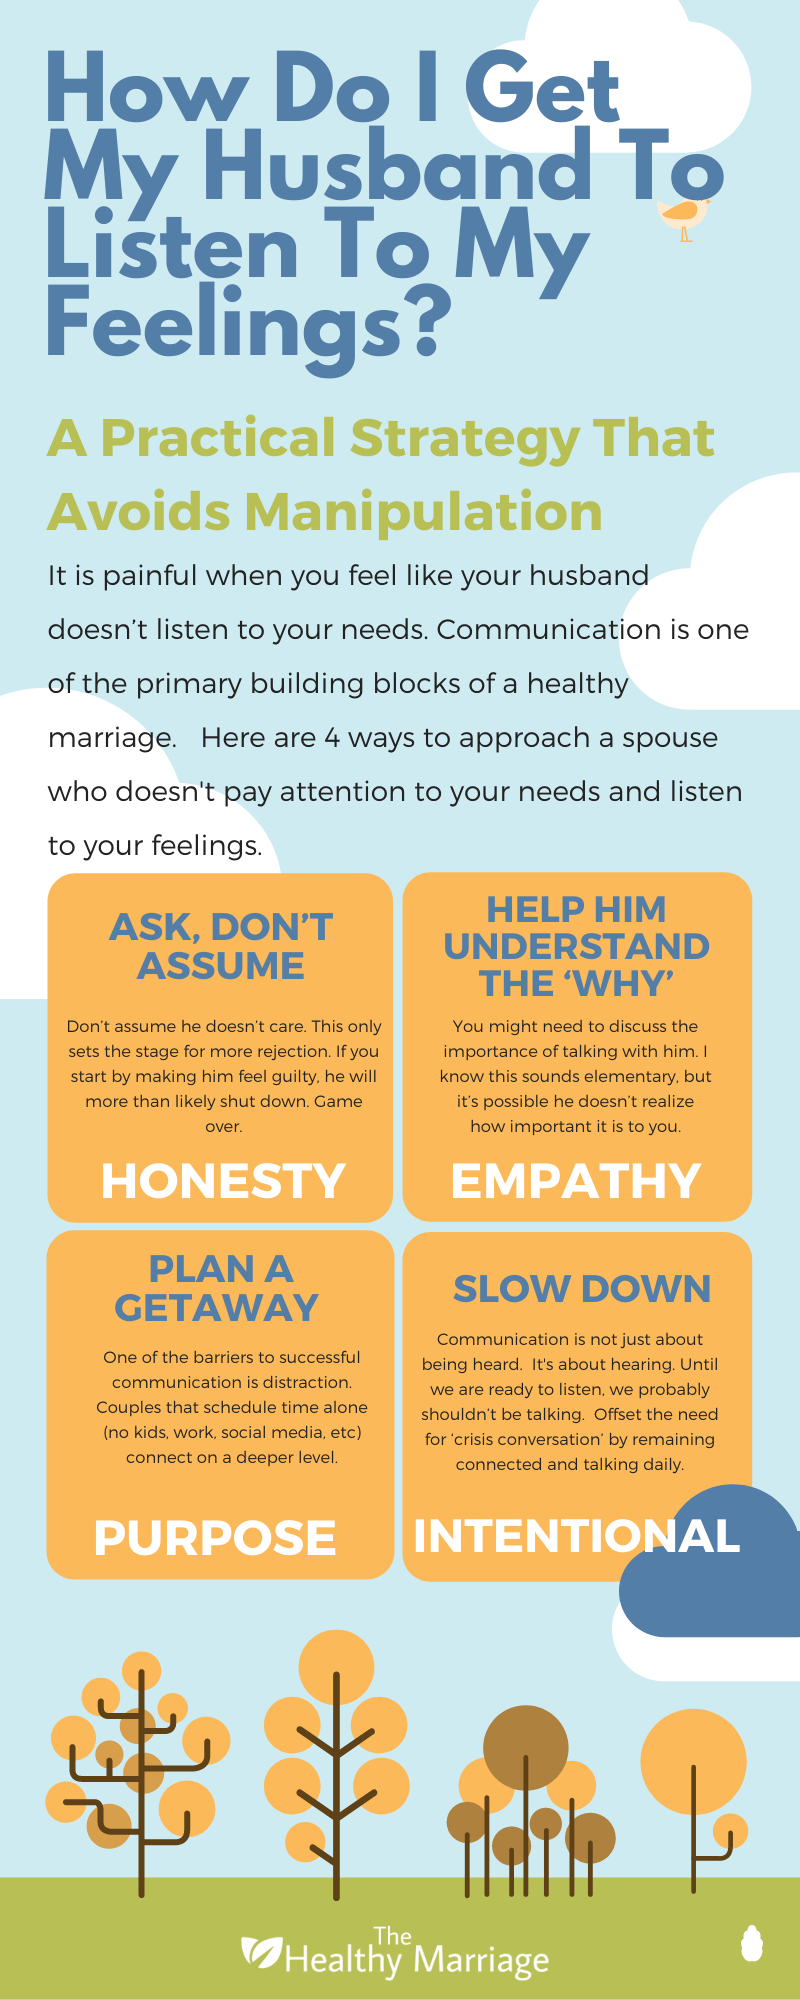 How to get my husband to listen to my feelings